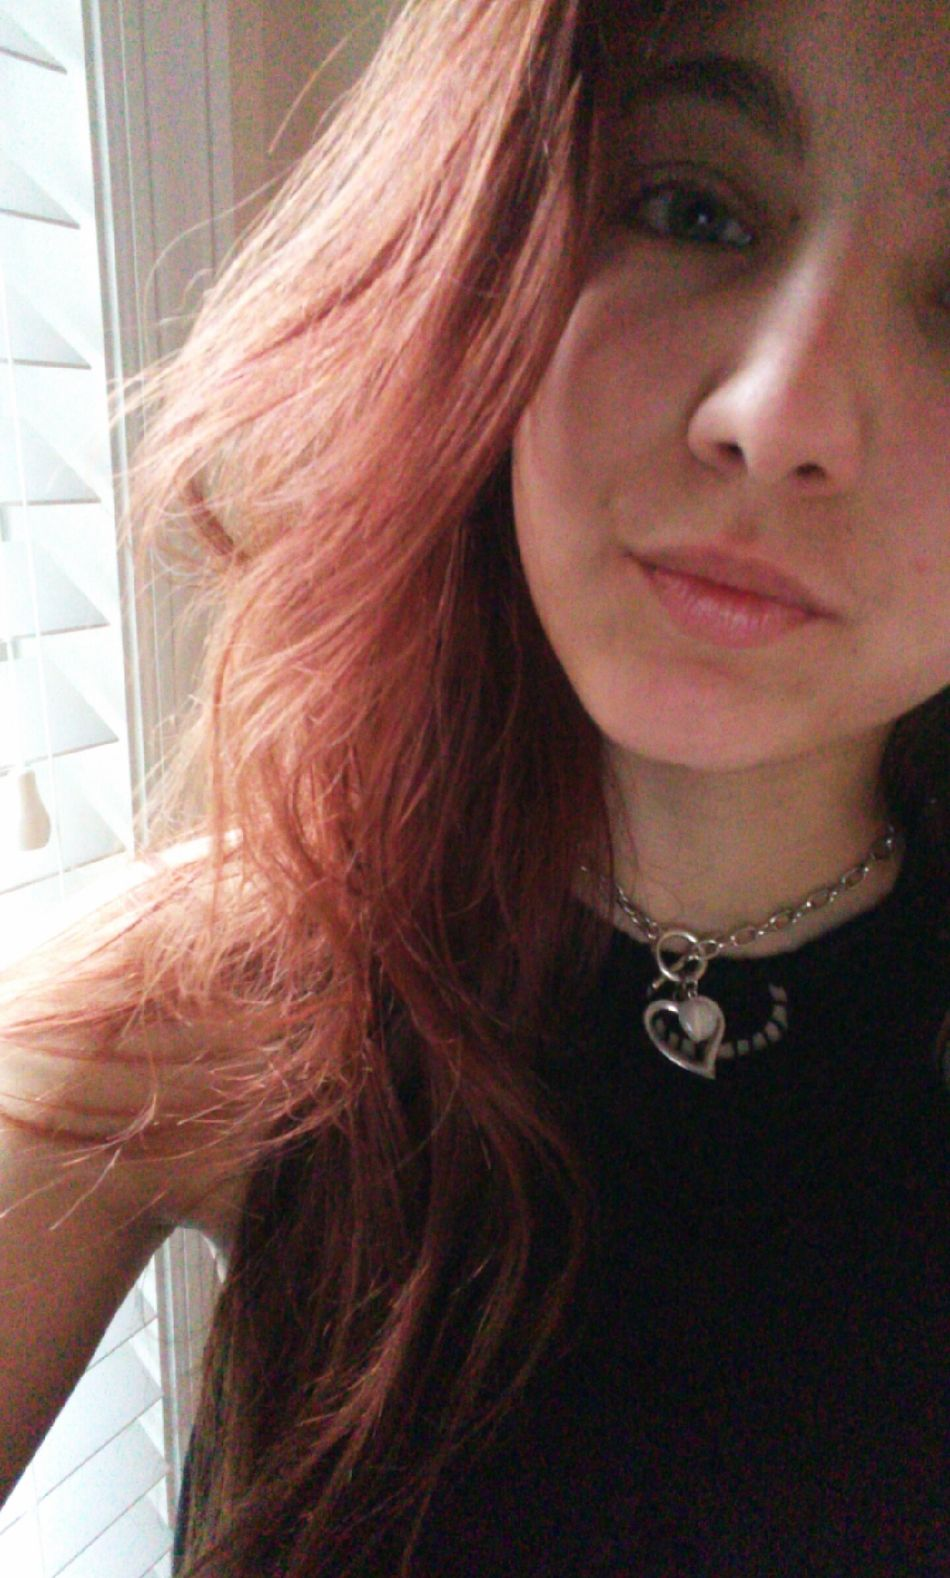 Another one because I couldn't resist 😜 Selfie Selfies Anotherselfie I'm Cute I'm HOT Cute Like Love Redhead Natural Beauty Natural Beauty Beautiful Gorgeous Pretty Beautiful Girl Gorgeous Girl Prettygirl Teenagers  Teens Teengirl Girl That's Me!